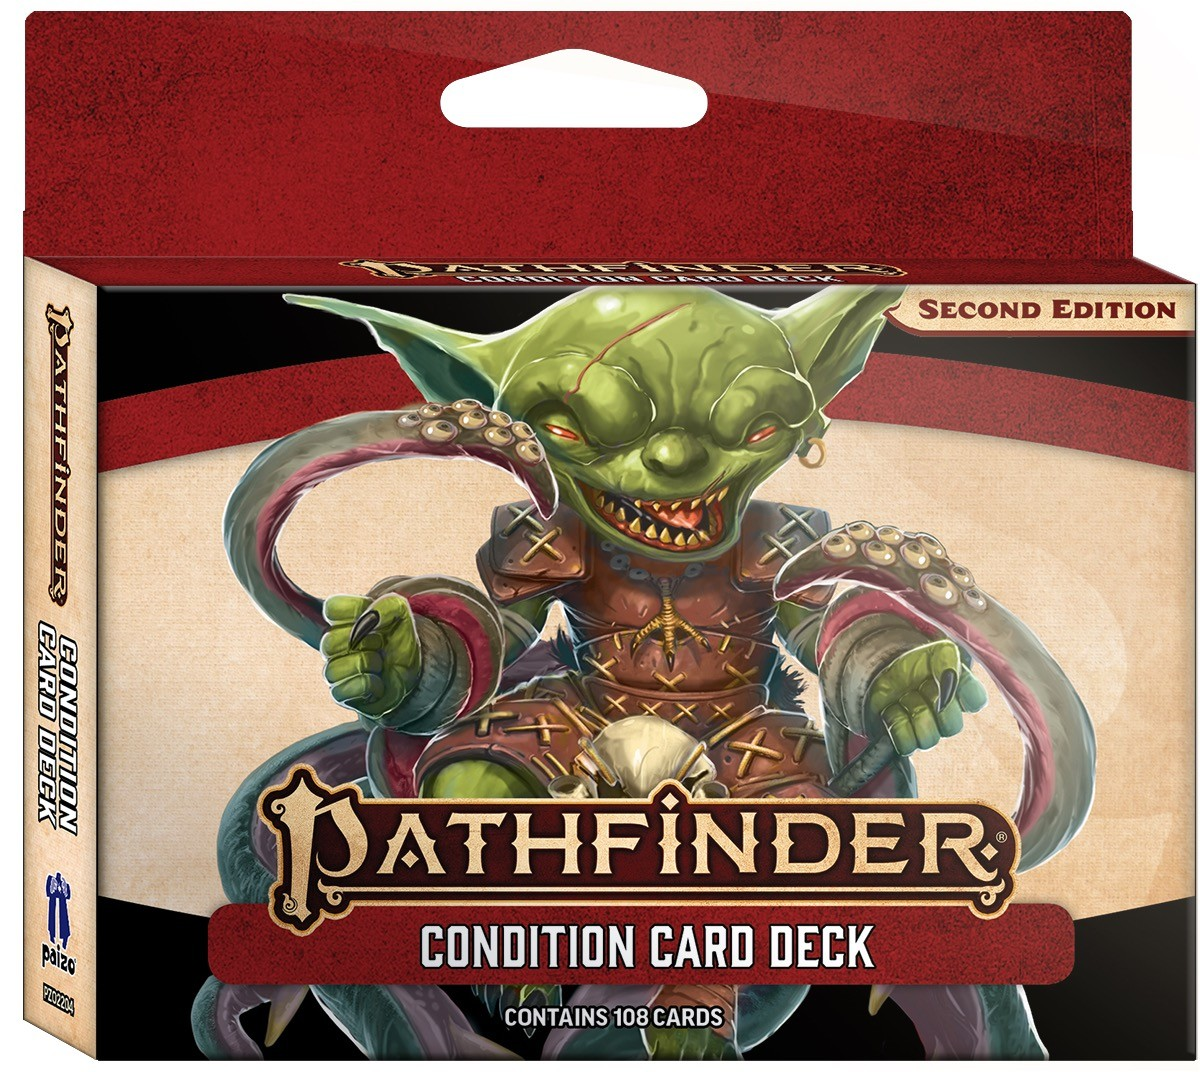 Review – Pathfinder Condition Card Deck (Second Edition